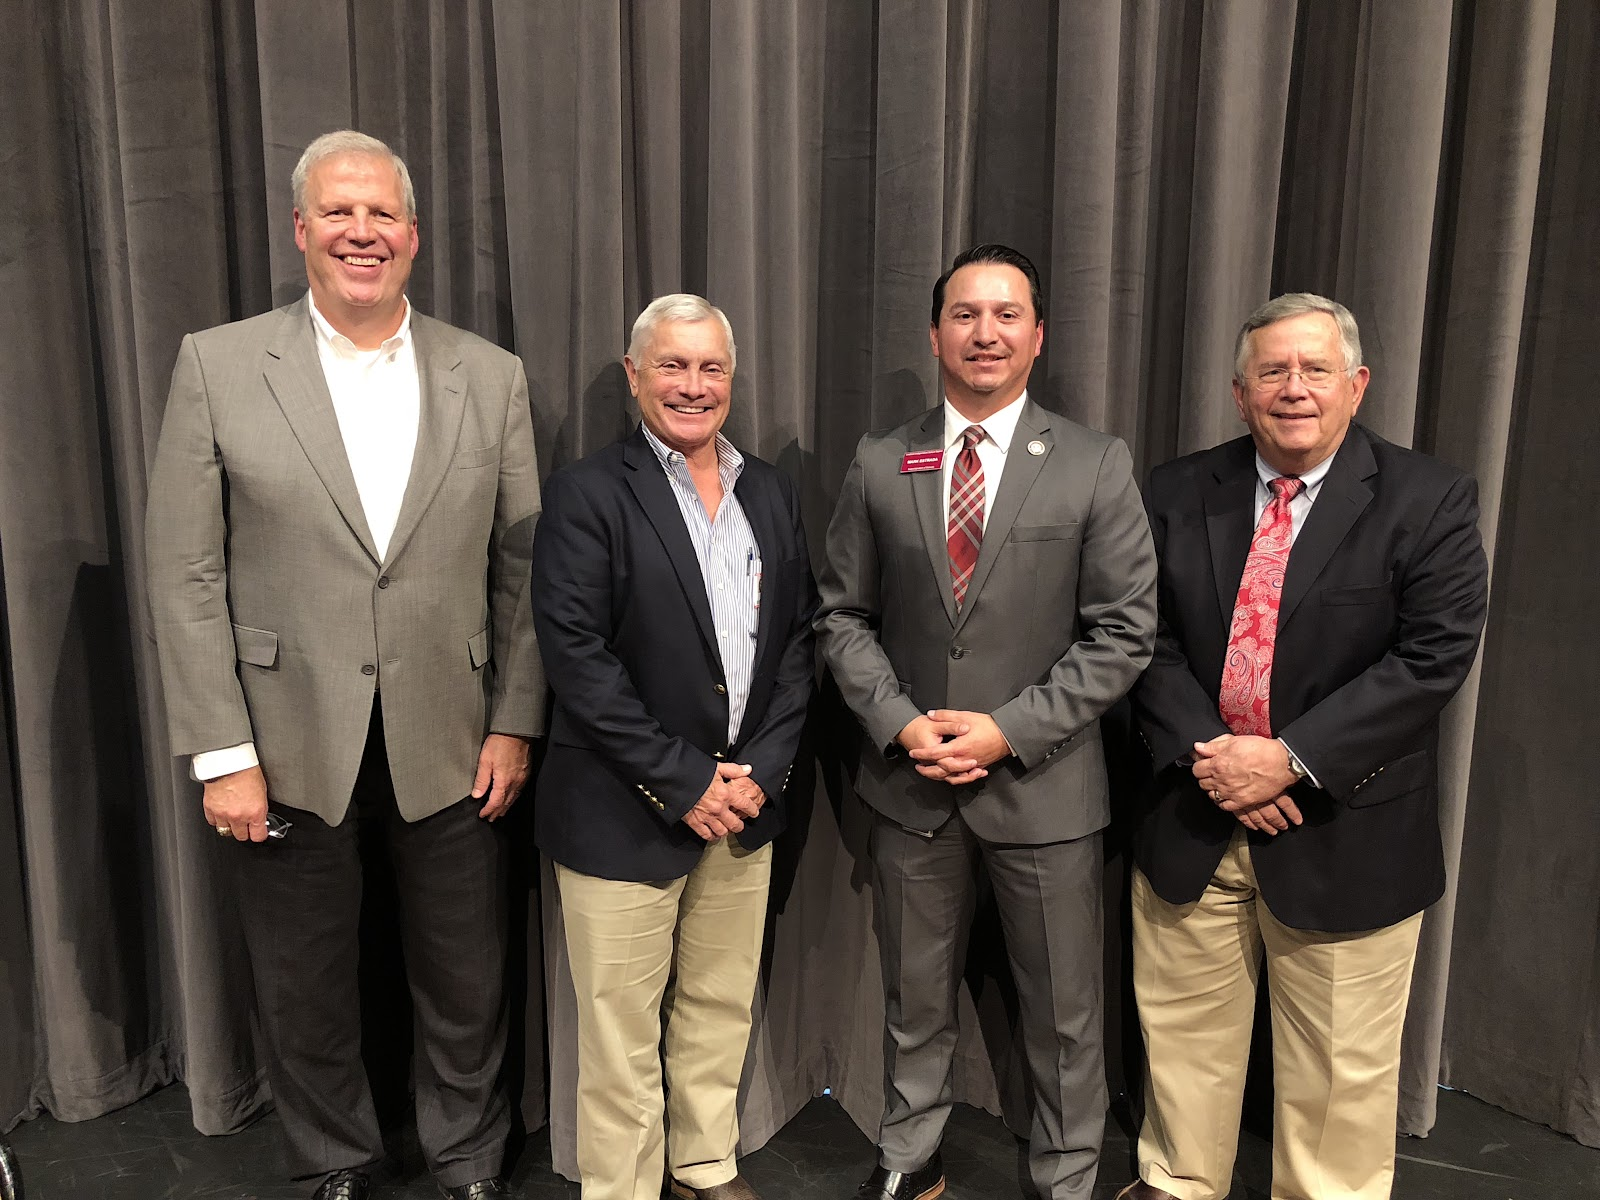 Lockhart City Manager Steve Lewis, Caldwell County Judge Ken Schawe, LISD Superintendent Mark Estrada, and Lockhart Mayor Lew White